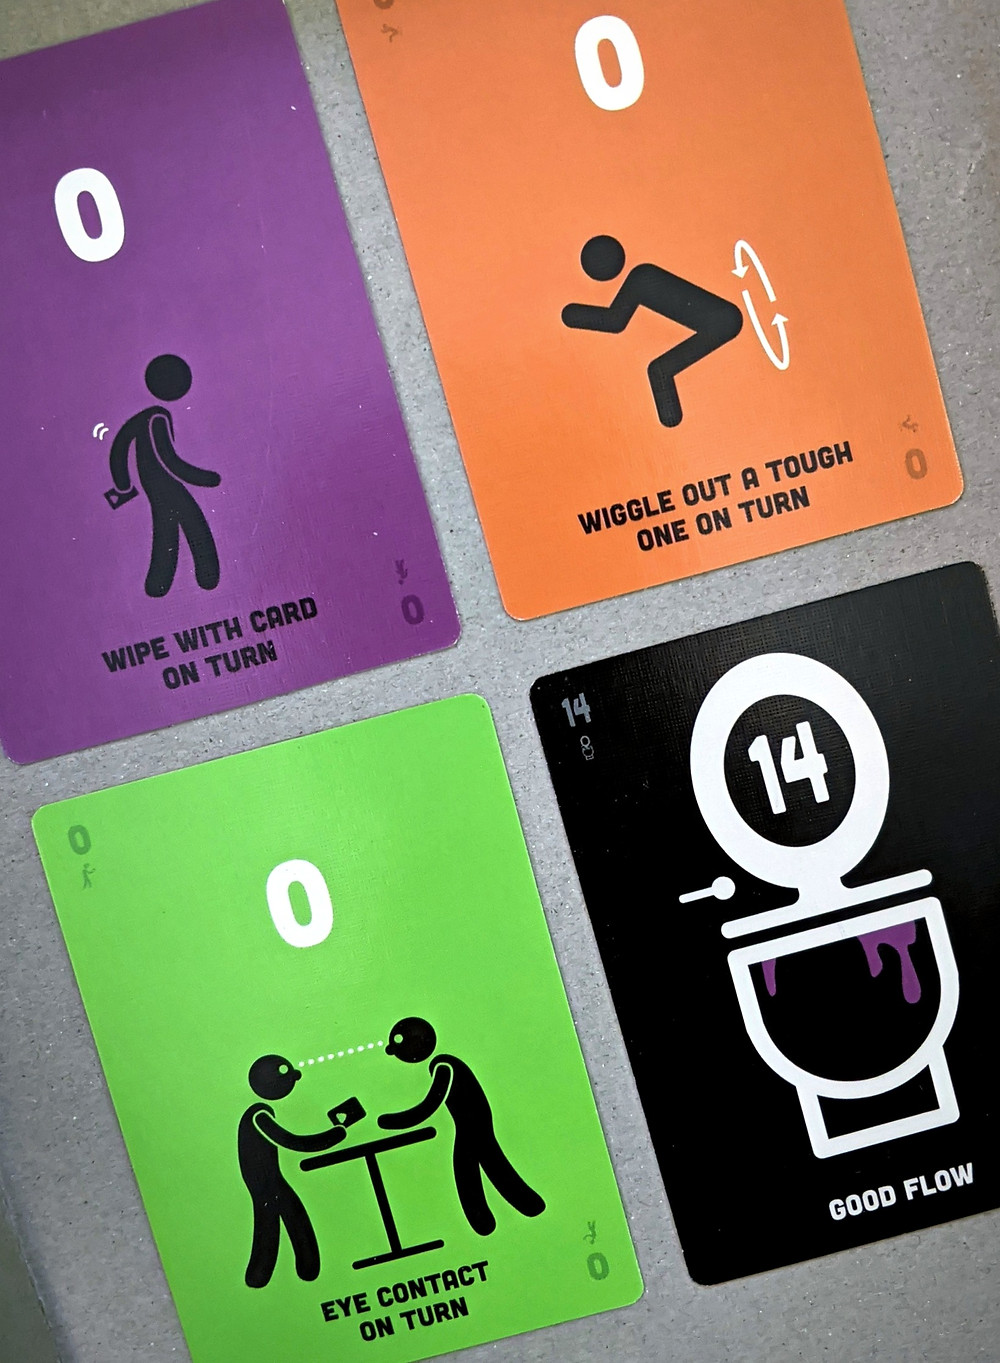 Poop: The Game wild cards and toilet